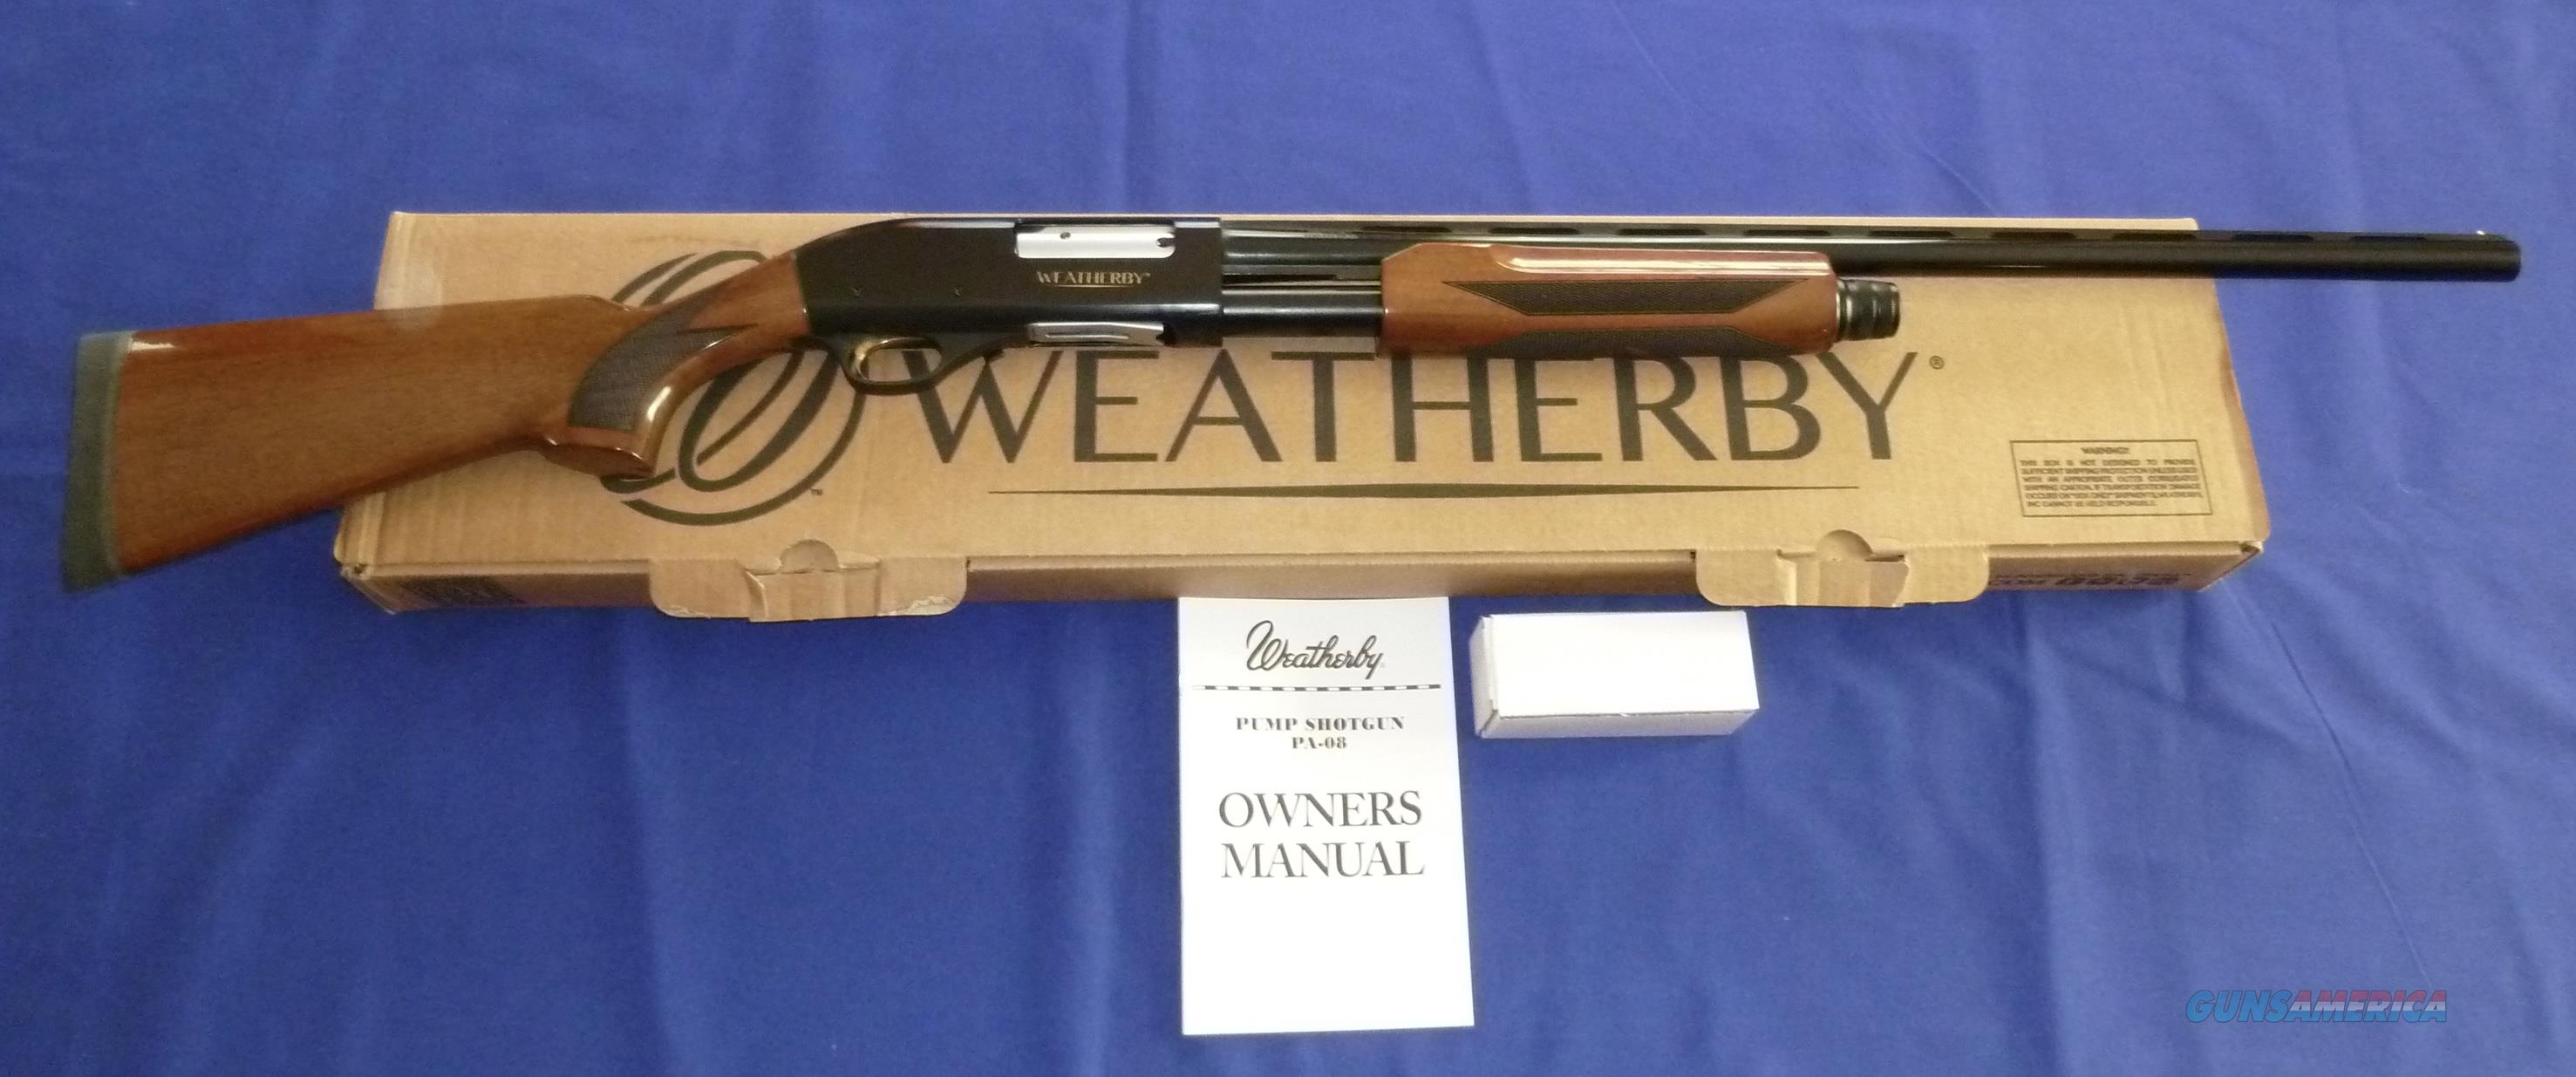 WEATHERBY PA-08 UPLAND 12 GAUGE PUMP SHOTGUN  Guns > Shotguns > Weatherby Shotguns > Pump